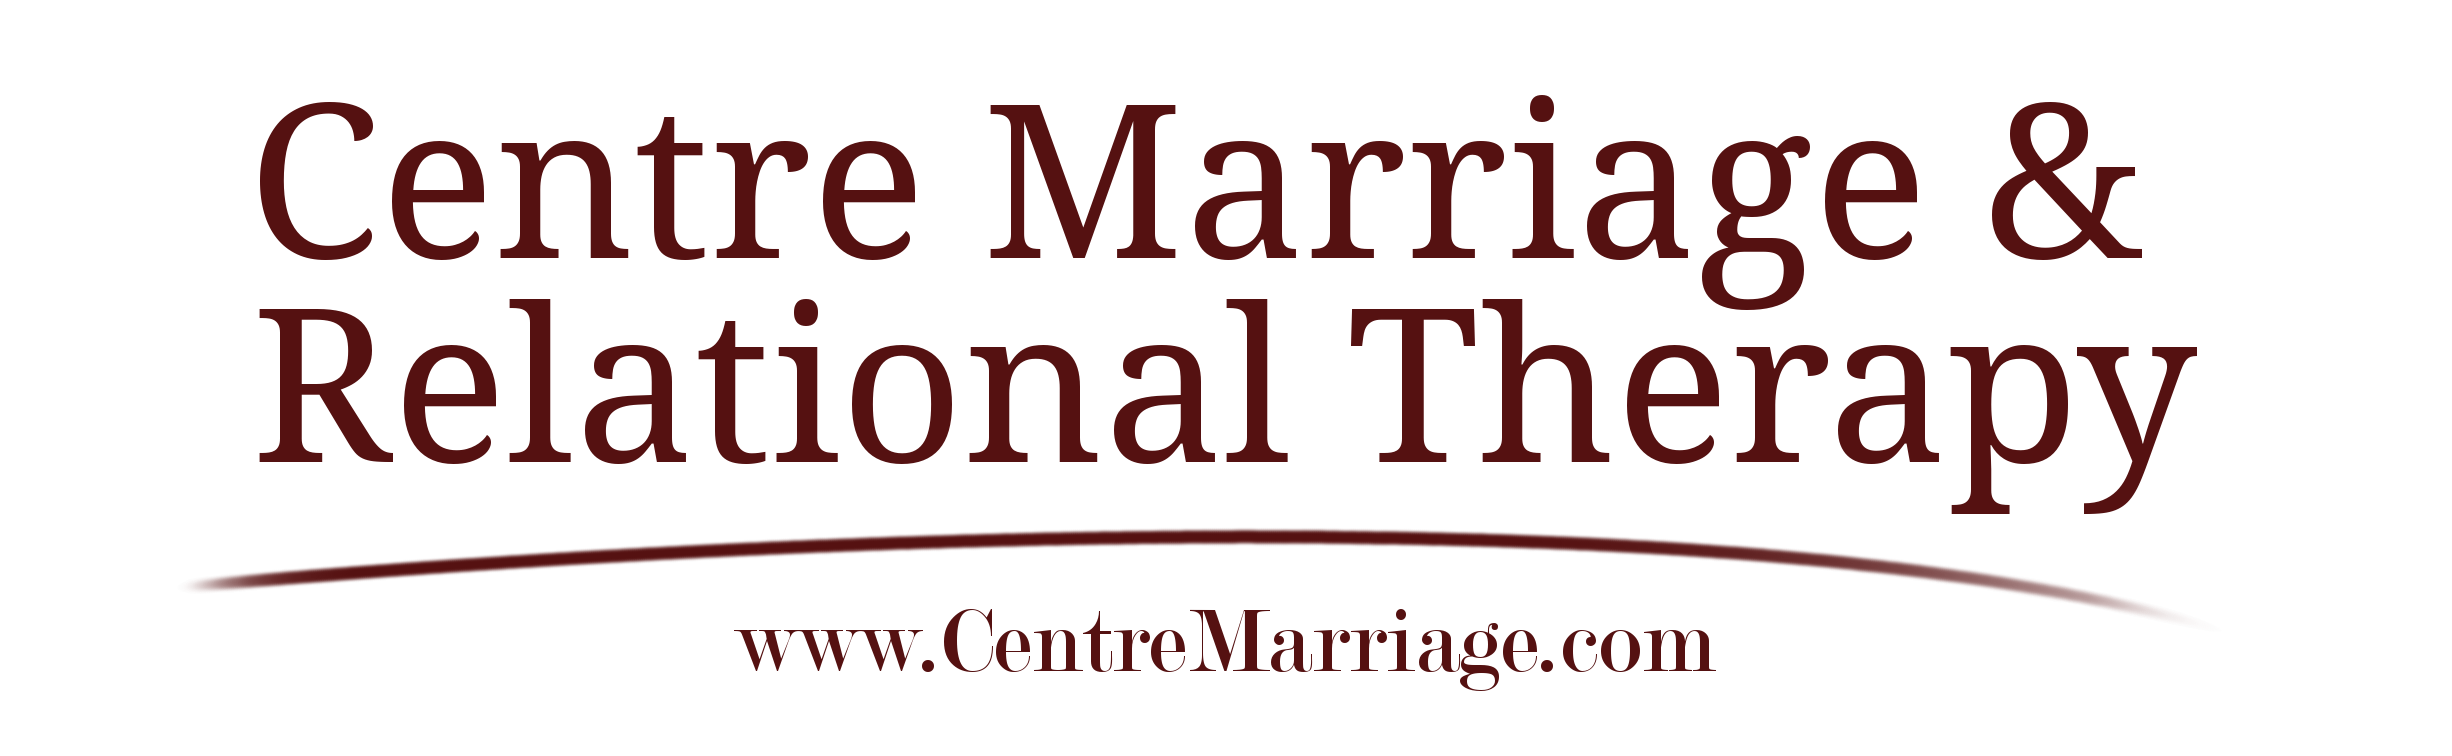 Centre Marriage and Relational Therapy